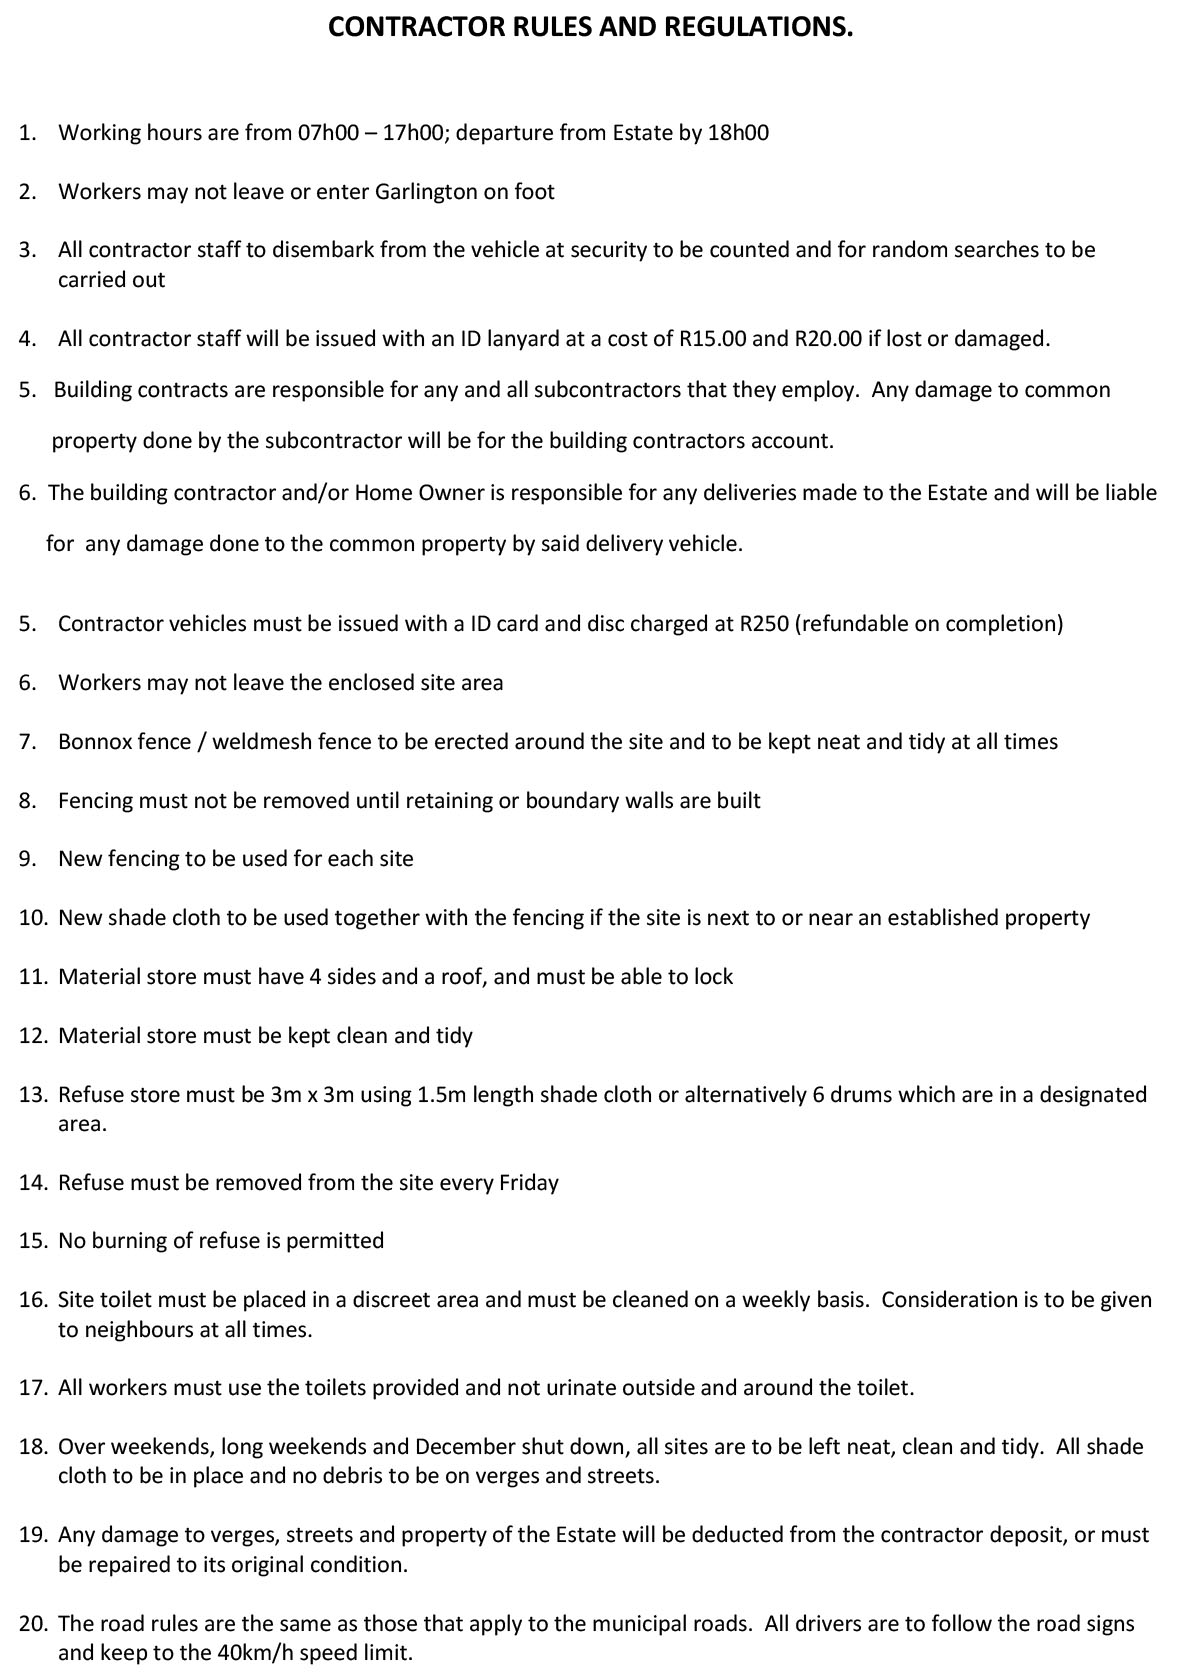 contractors-rules-and-regulations-garlington-midlands-housing-estate-2013